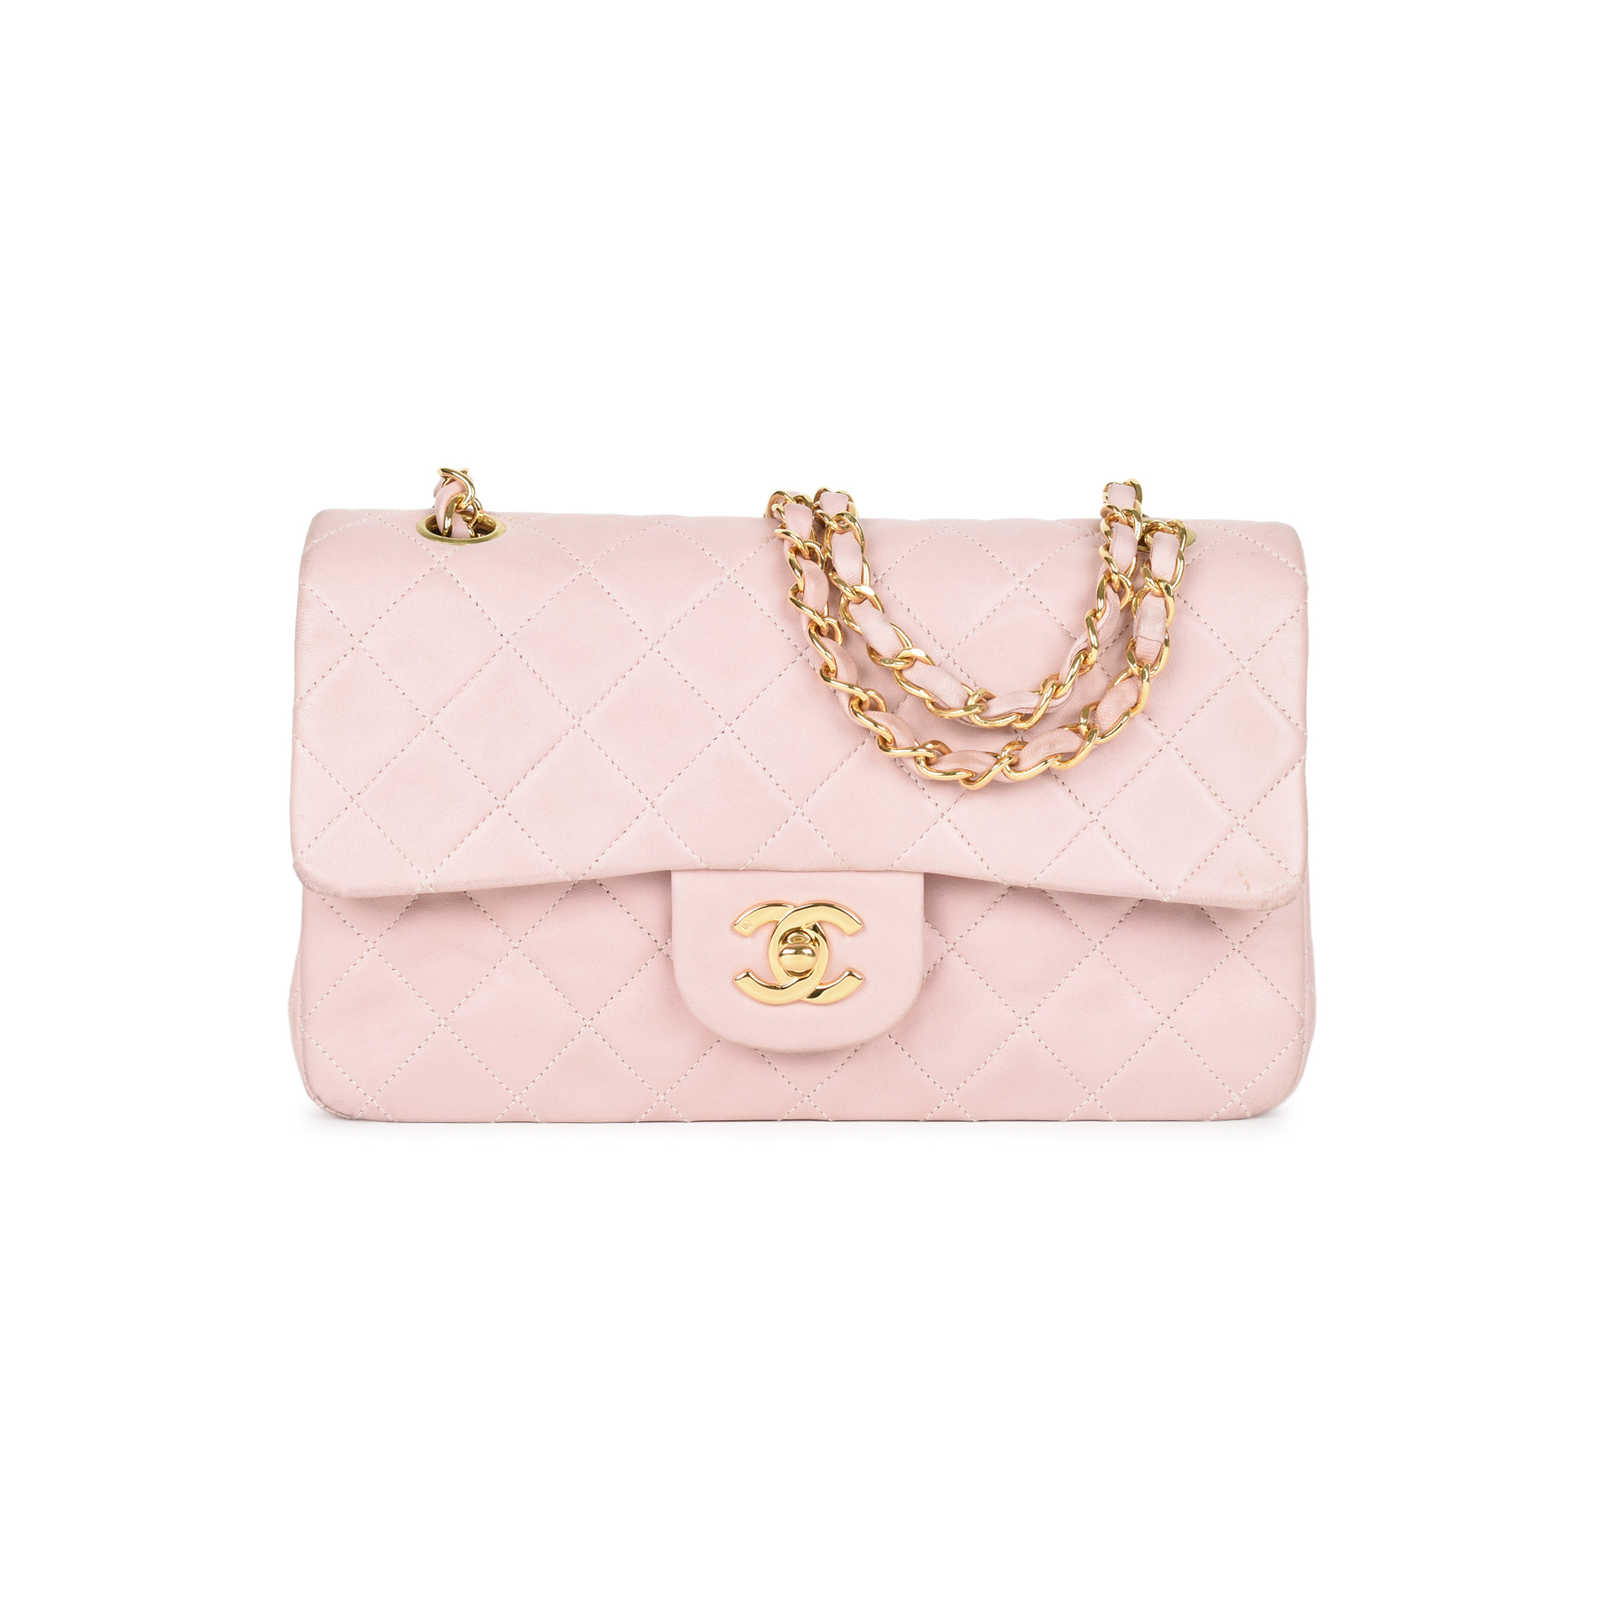 9a92e7e68b Authentic Second Hand Chanel Baby Pink Small Classic Flap Bag (PSS ...